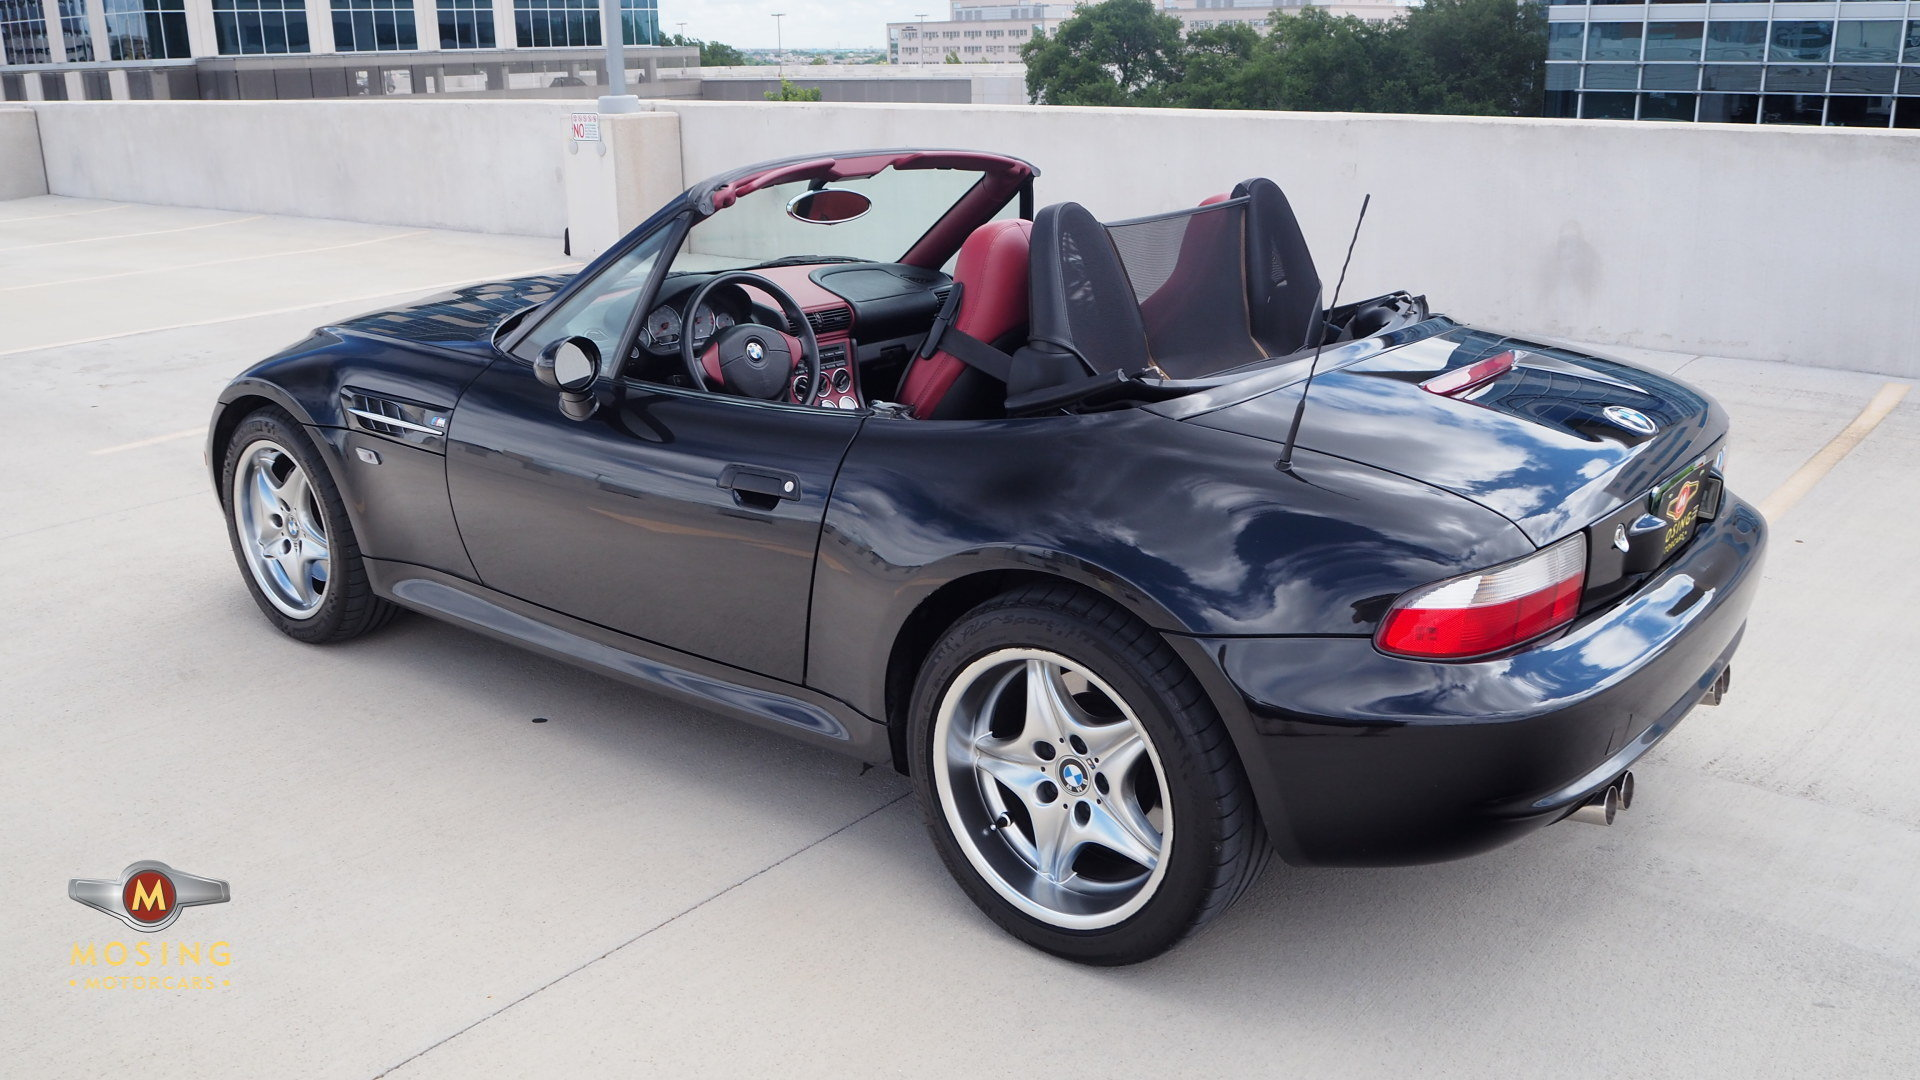 2001 Bmw Z3 M Roadster S54 For Sale 92262 Mcg